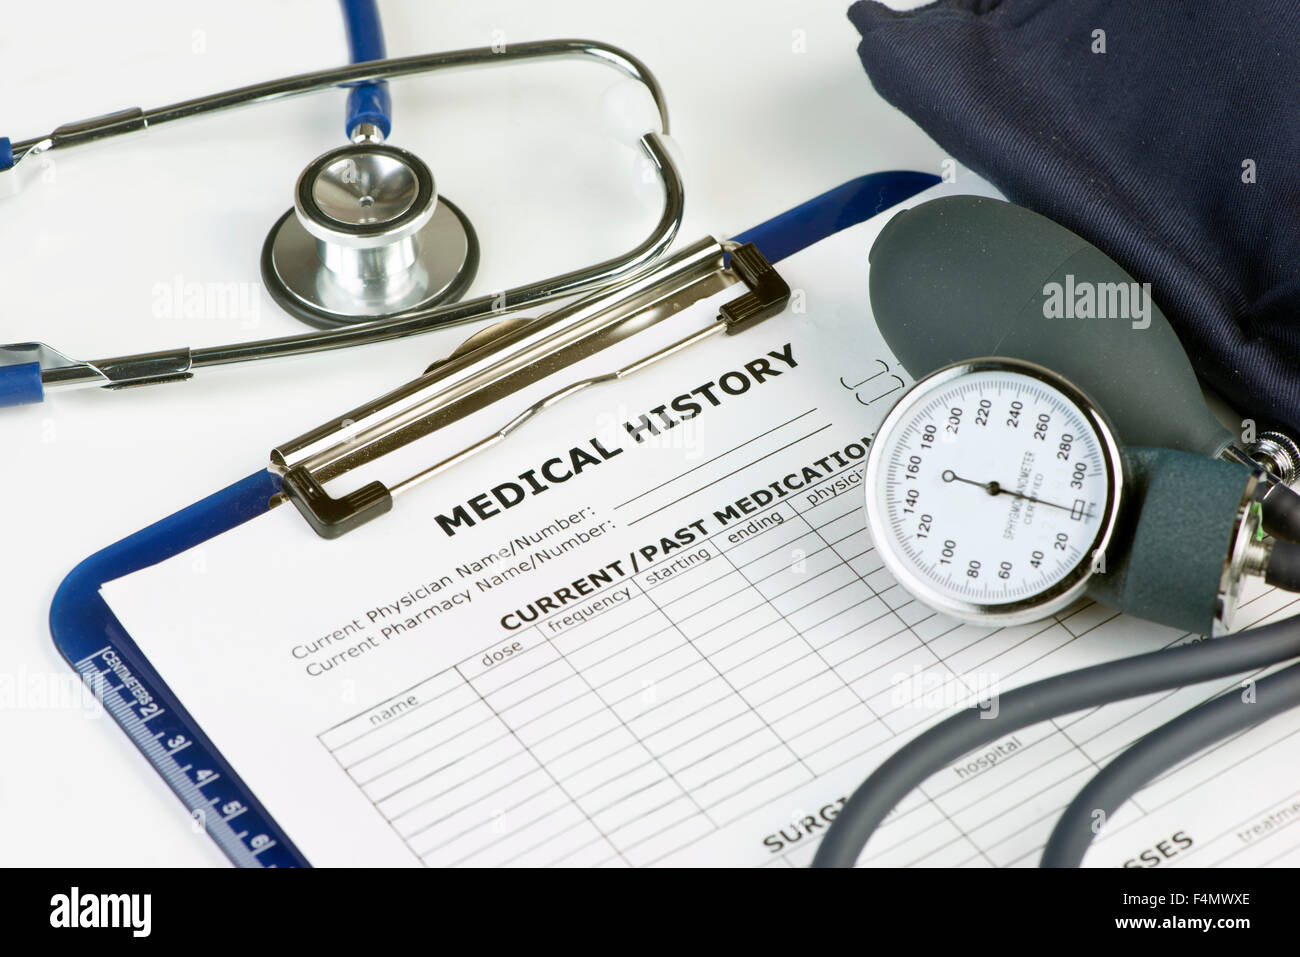 Patient chart with stethoscope and blood pressure cuff. - Stock Image